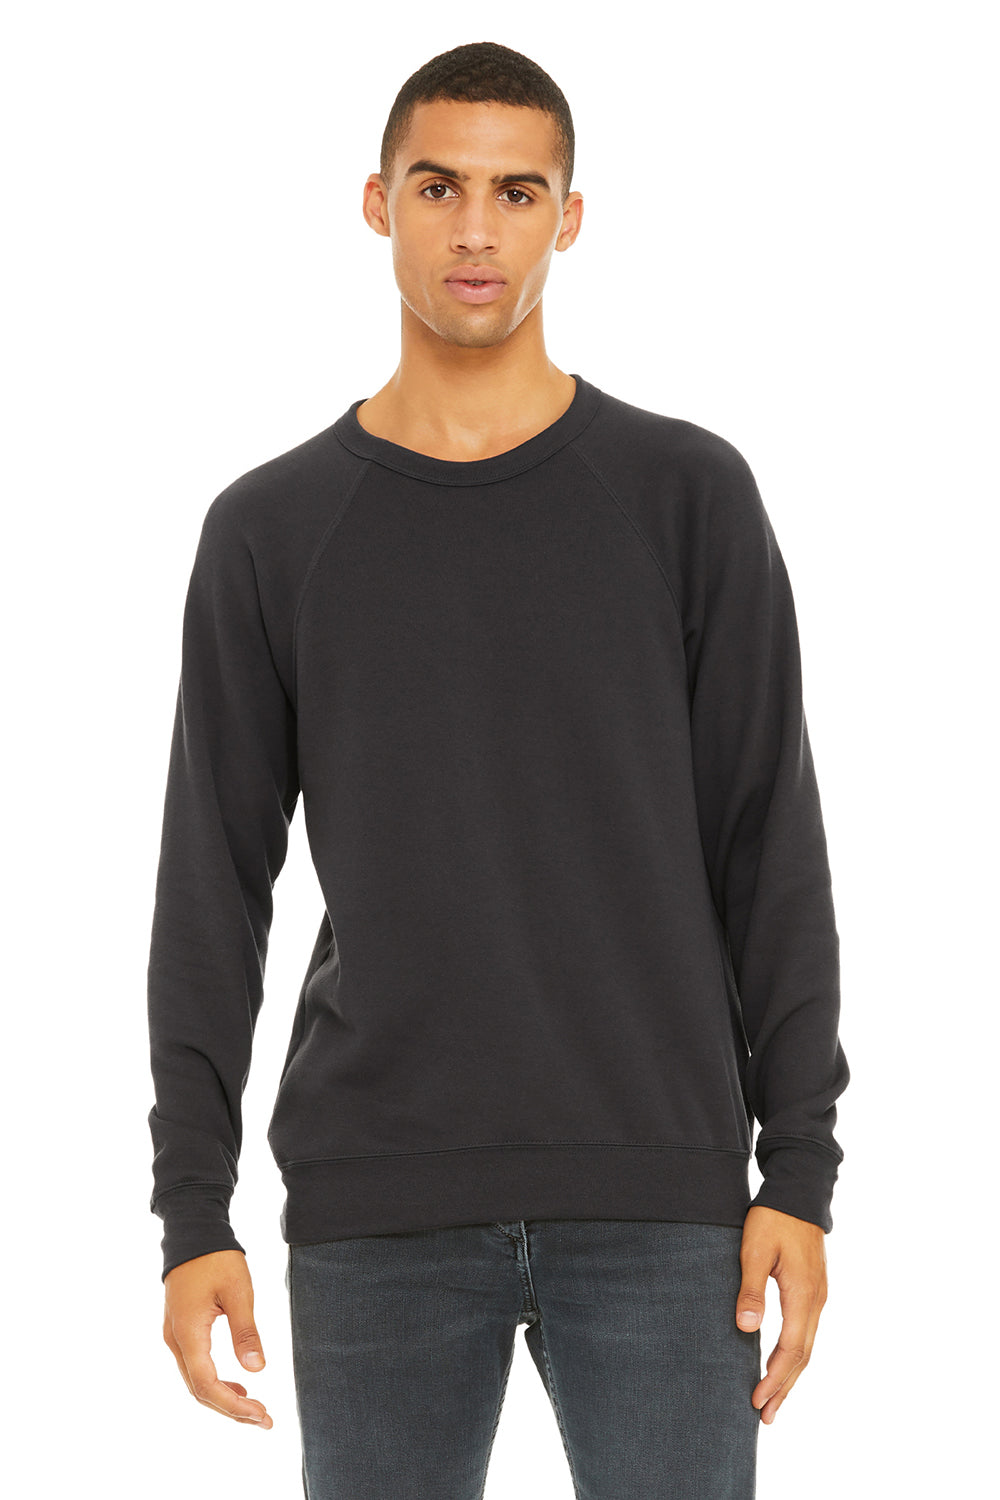 Bella + Canvas 3901 Mens Sponge Fleece Crewneck Sweatshirt Dark Grey Front